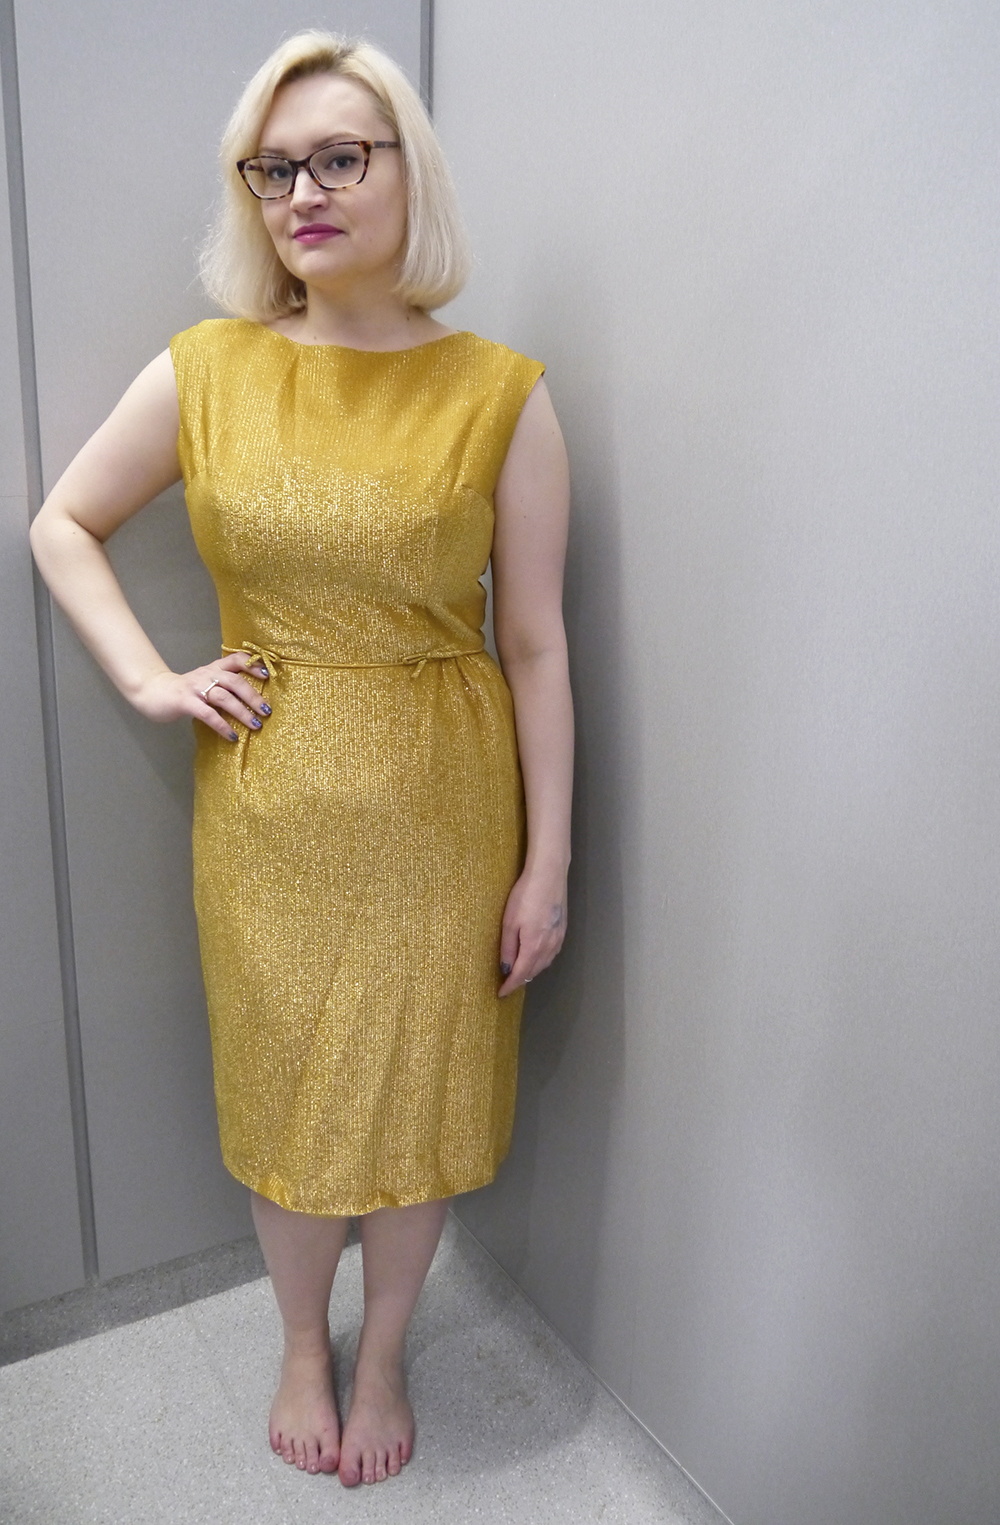 vintage fair, Lou Lou's Vintage fair, vintage shopping, Dundee, Scottish vintage fair, vintage event, vintage cocktail dress, gold dress, April's Vintage Emporium